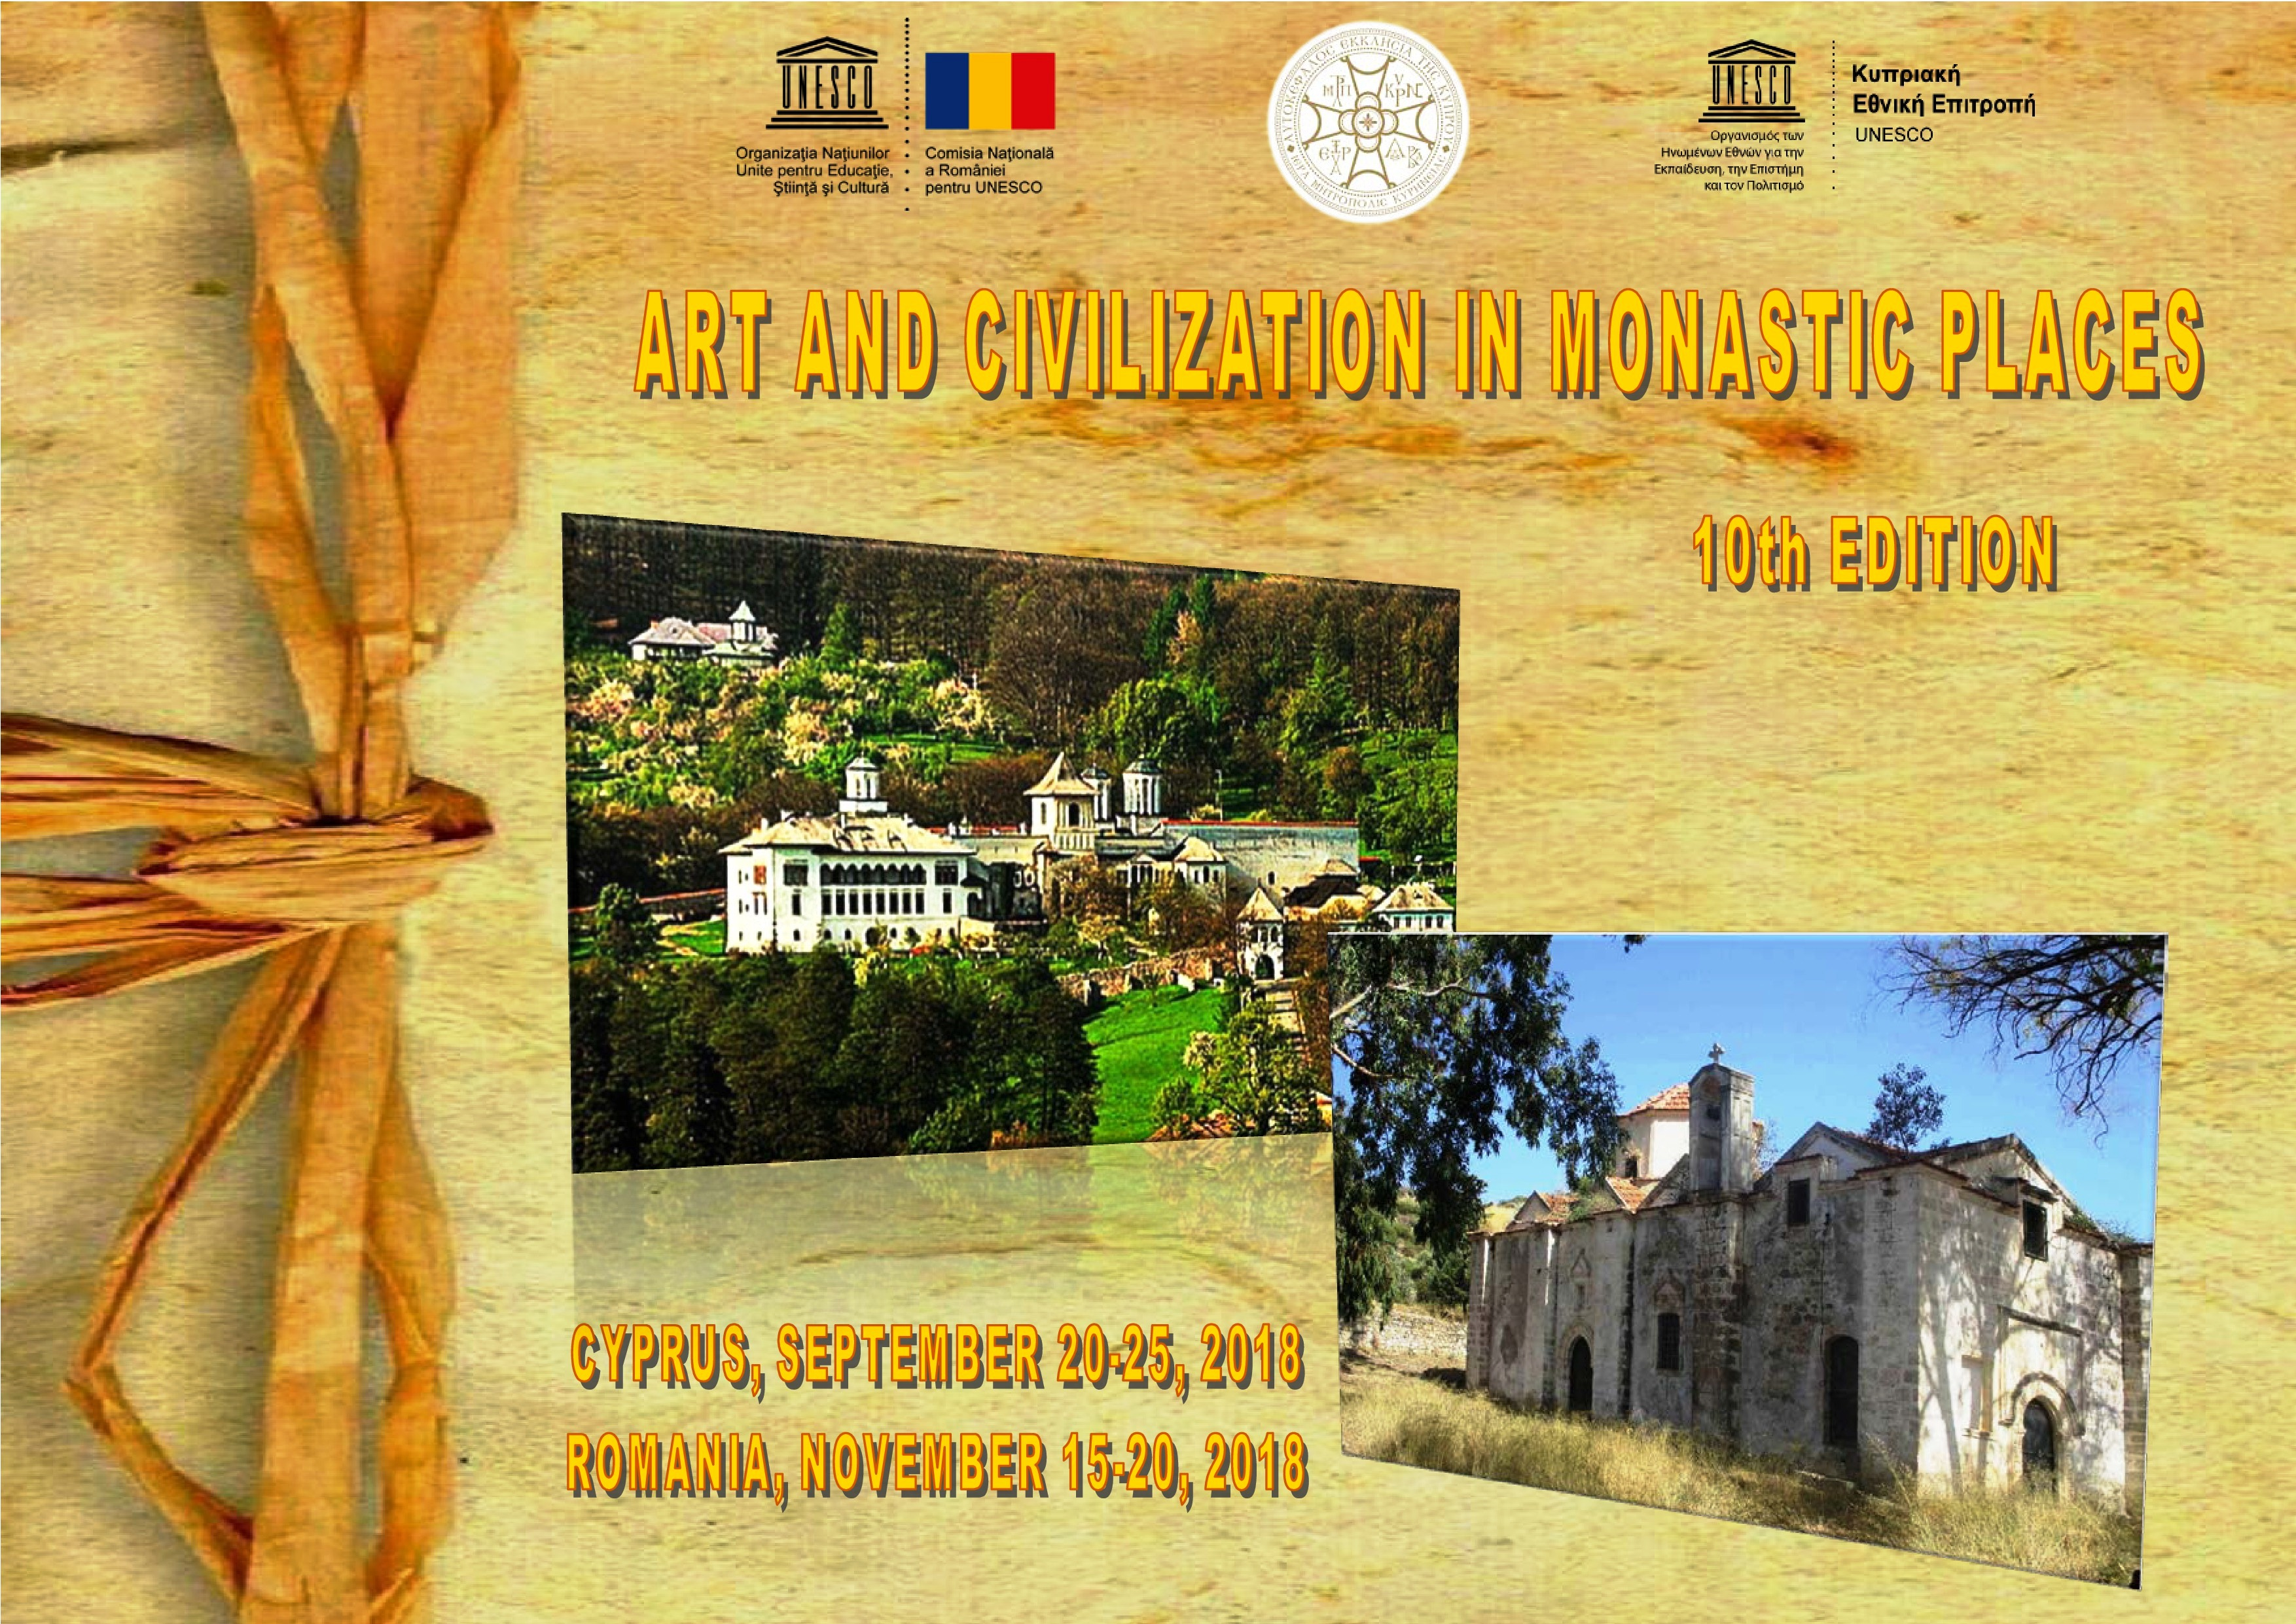 Art and Civilization in Monastic Spaces - 10th edition